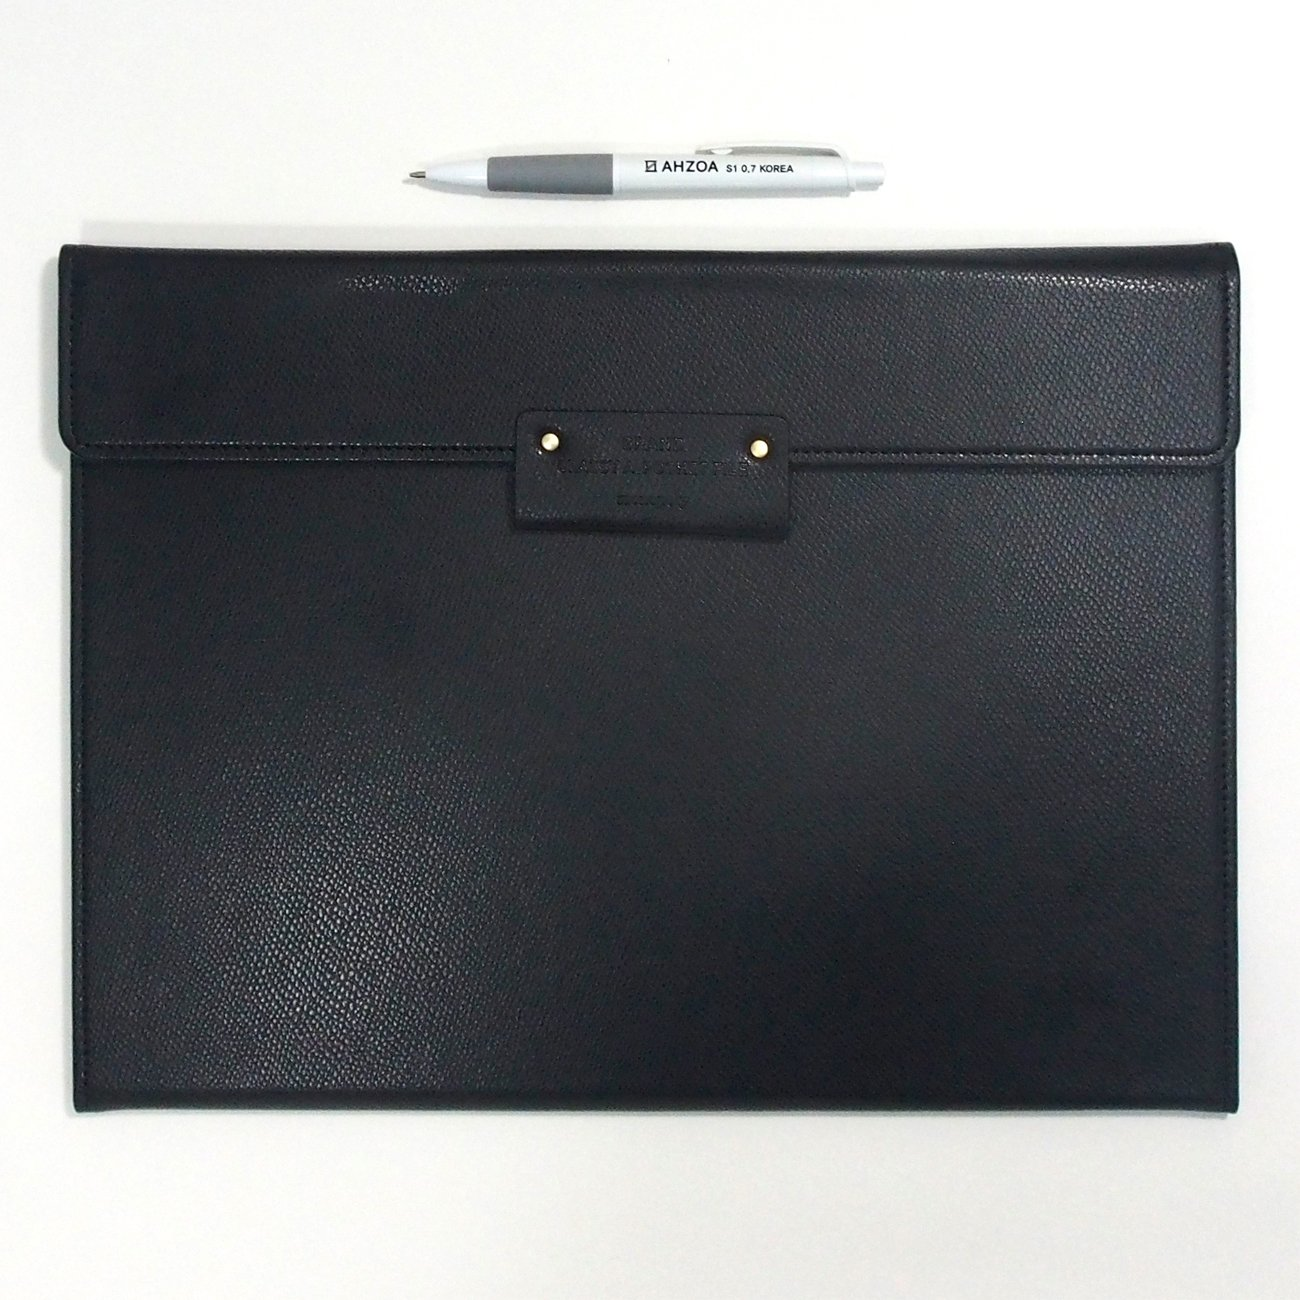 Grand Classy 8 Pockets File Holder with AHZOA Pencil (black) by Monopoly (Image #6)